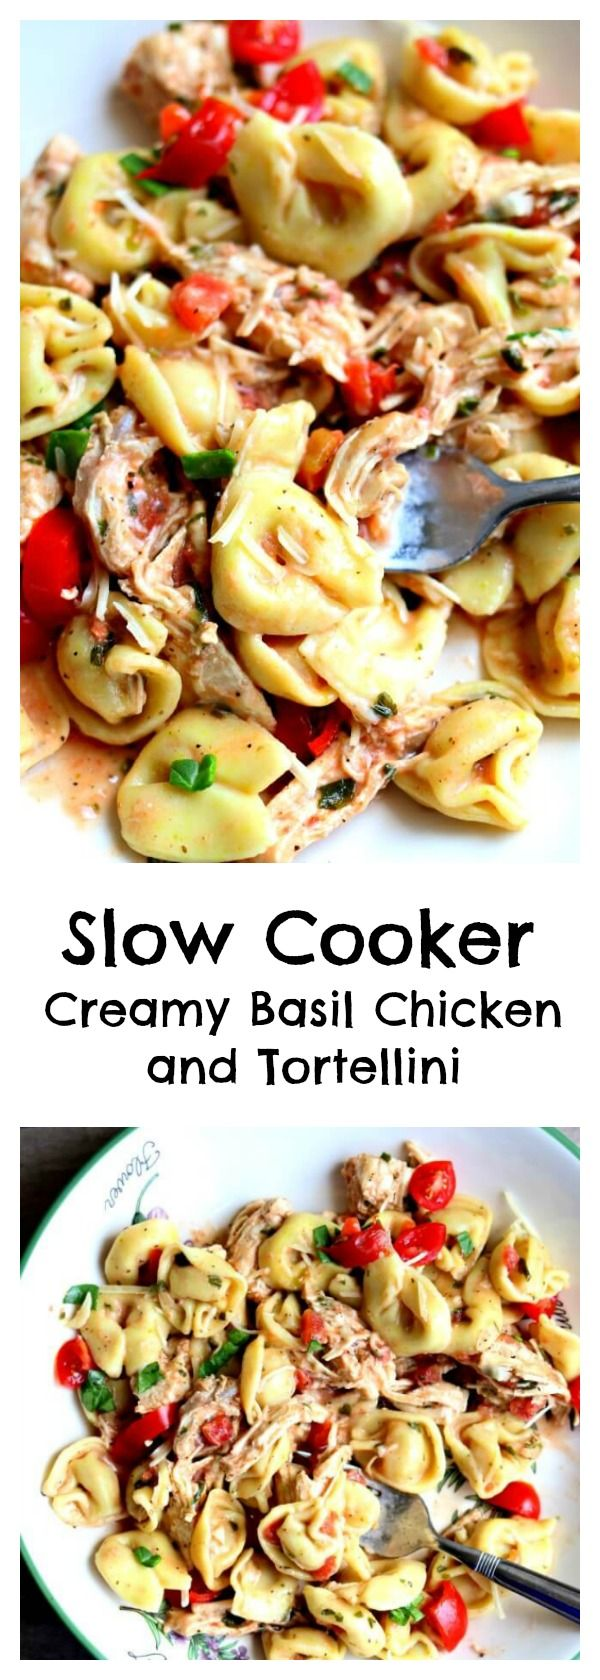 Slow Cooker Creamy Basil Chicken and Tortellini–tender bites of chicken breast and cheesy tortellini are served in a creamy tomato basil sauce. This is made in your slow cooker and is a no fuss recipe! #slowcooker #crockpot